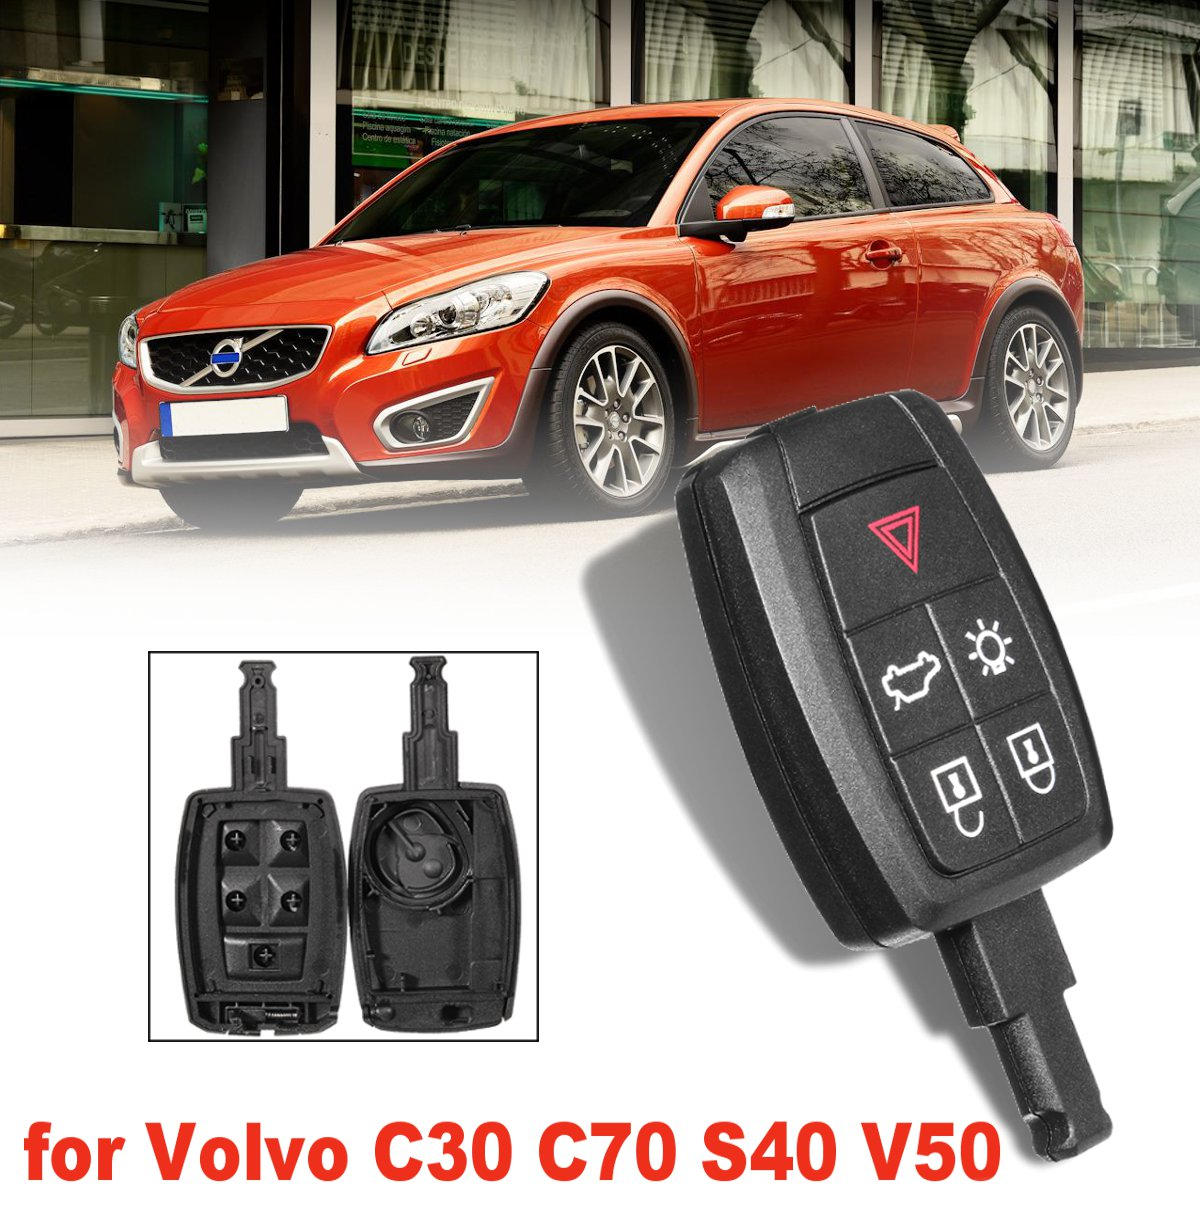 5 Button Remote Car Key Case/Bag Fob Shell Replacement Keyless for Volvo C30 C70 S40 V50